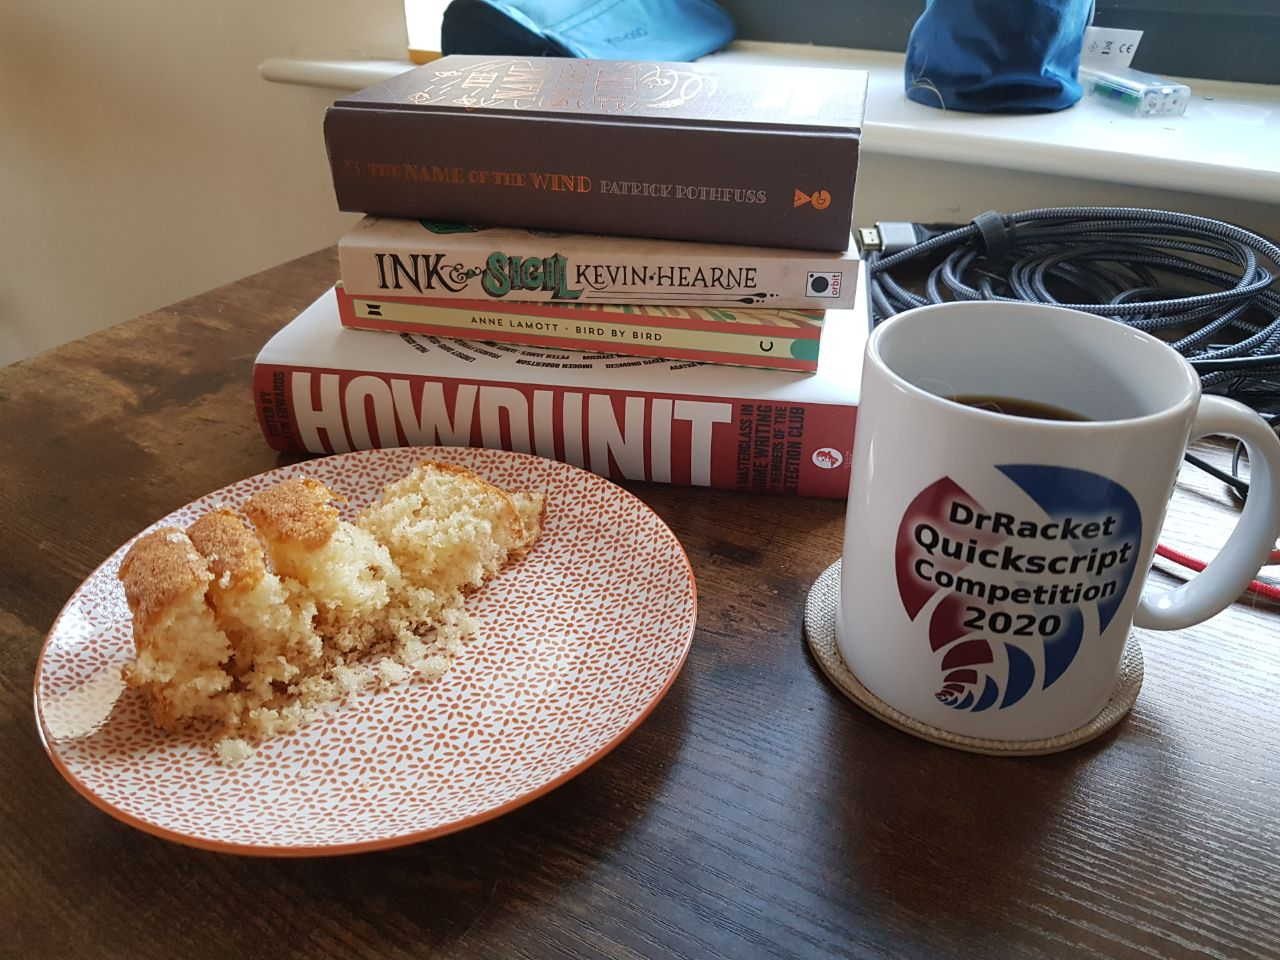 A good way to start the day: coffee, cake, and books.